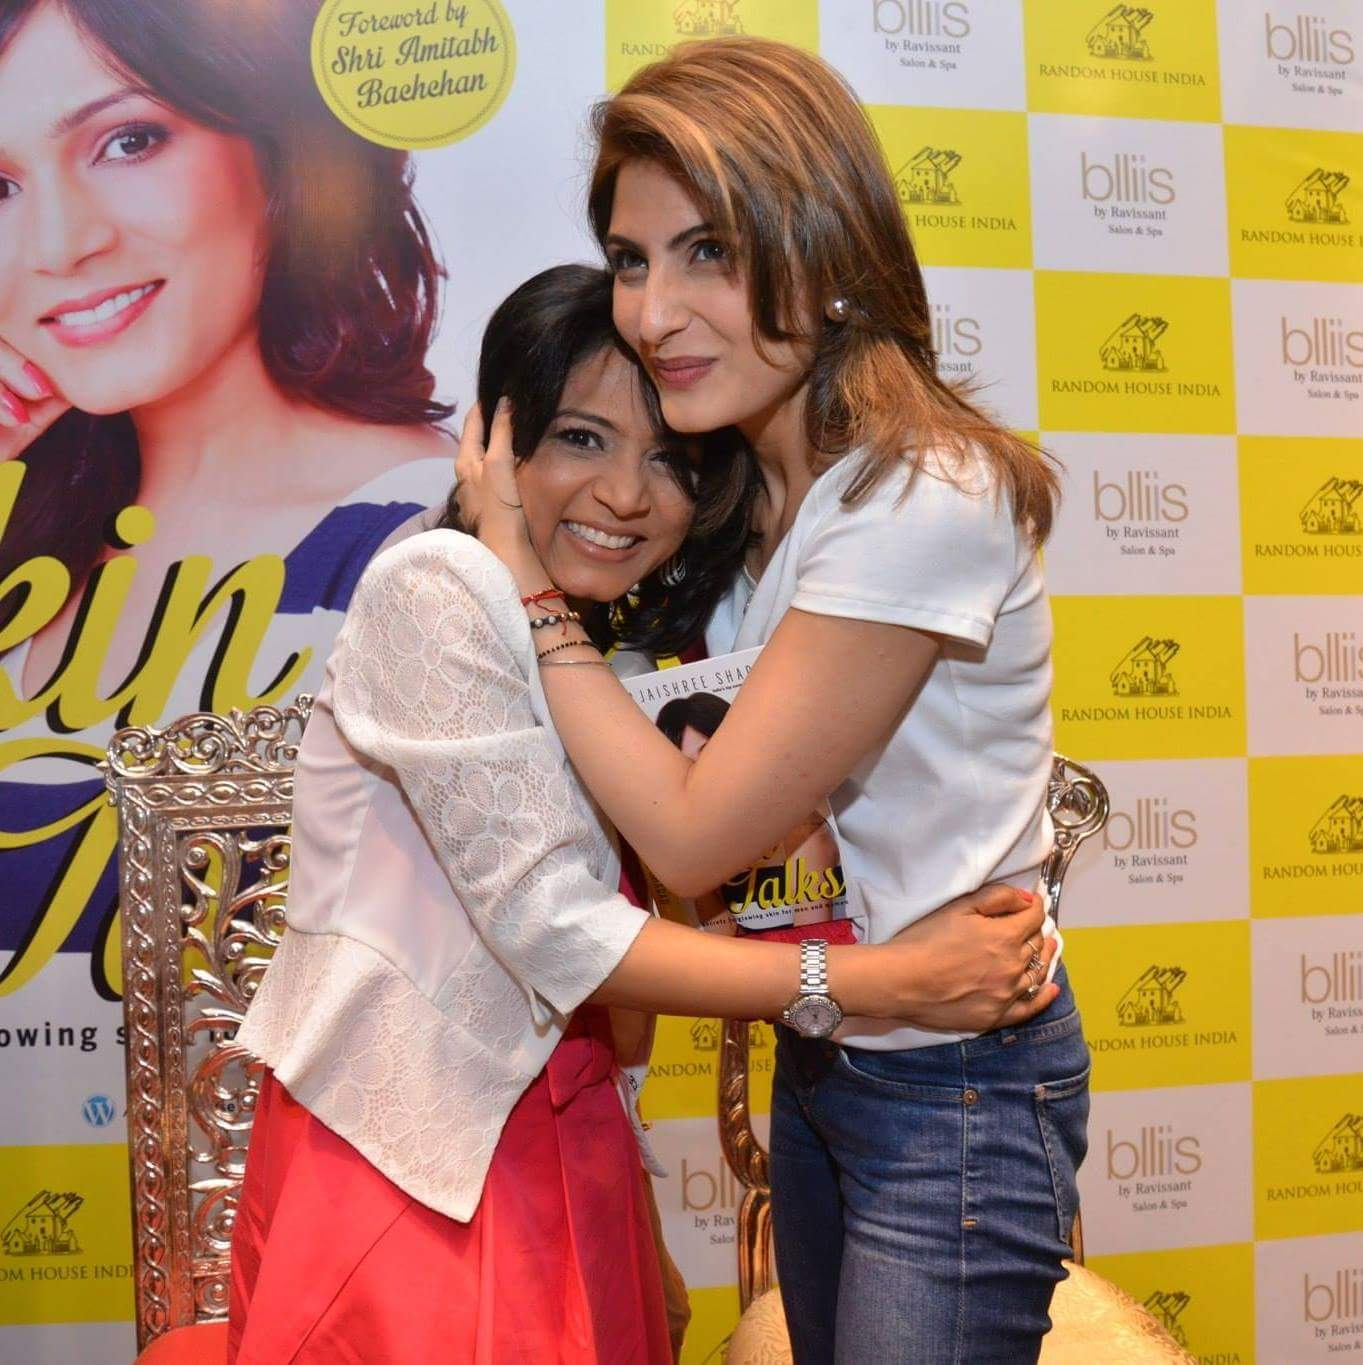 With the gorgeous Riddhima Kapoor Sahni